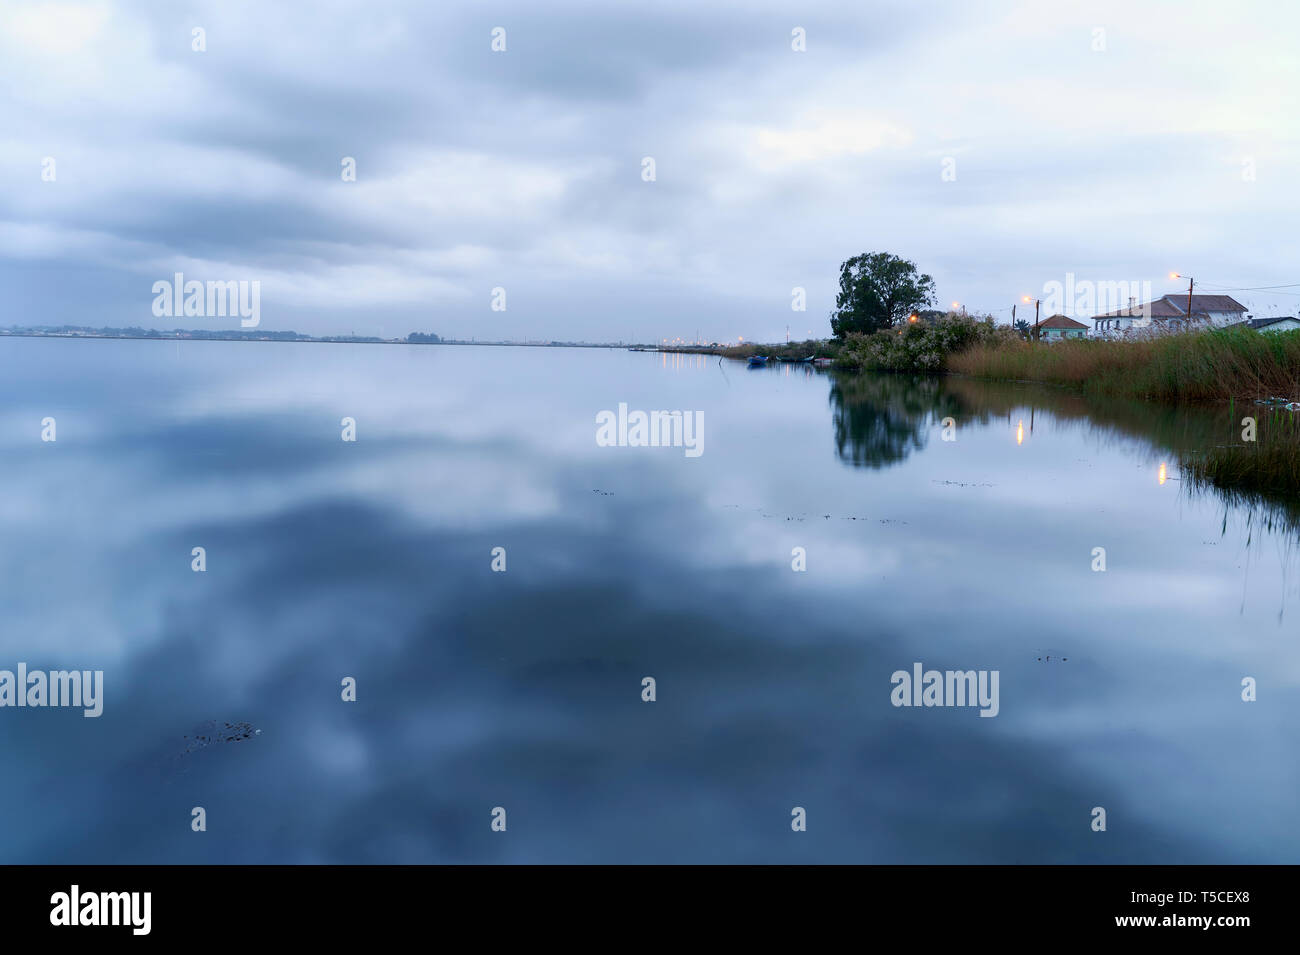 Shore and cloudy winter sky, are reflected in the lake surface ant blue hour in Torreirra, Aveiro Lagoon, Portugal Stock Photo